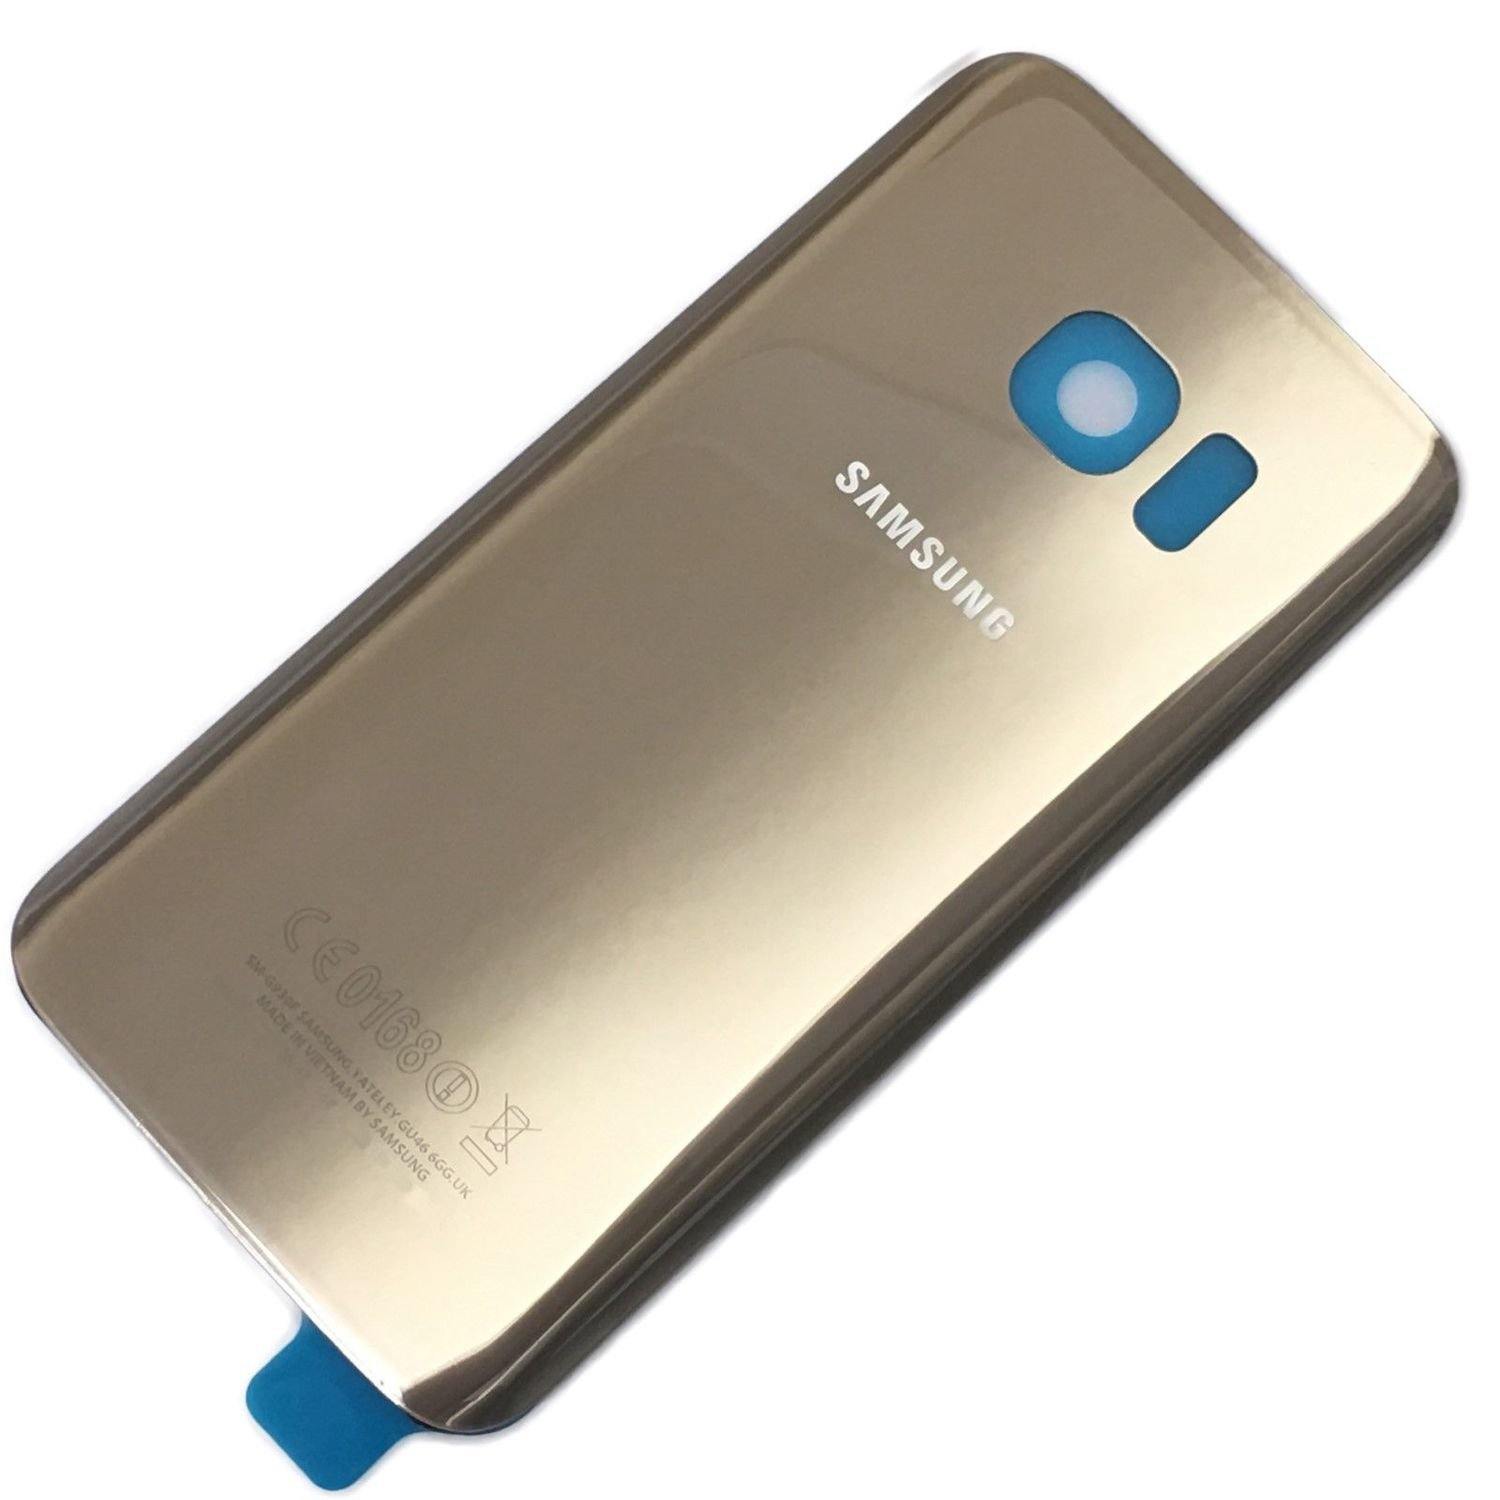 Samsung S7 Edge Back Cover Replacement - Gold